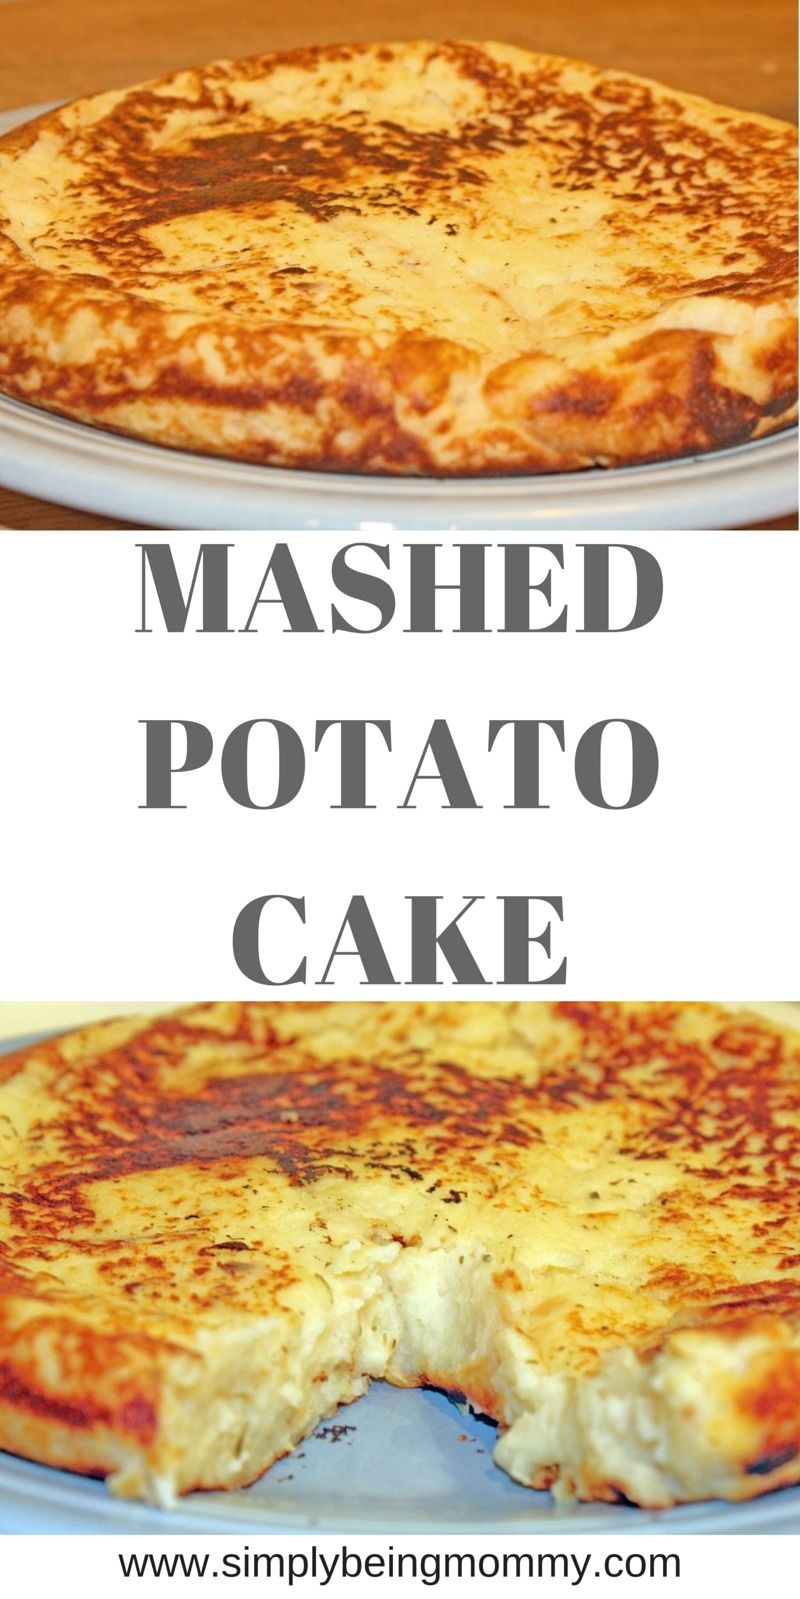 Mashed Potato Cake #potatopancakesfrommashedpotatoes